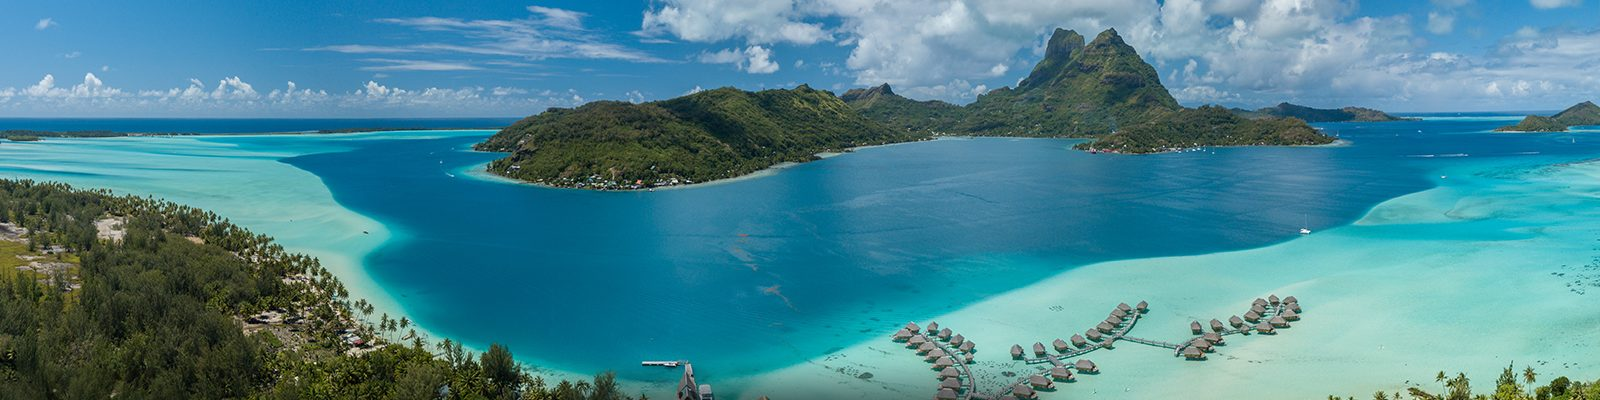 Header3 Bora Bora Honeymoons Bora Bora